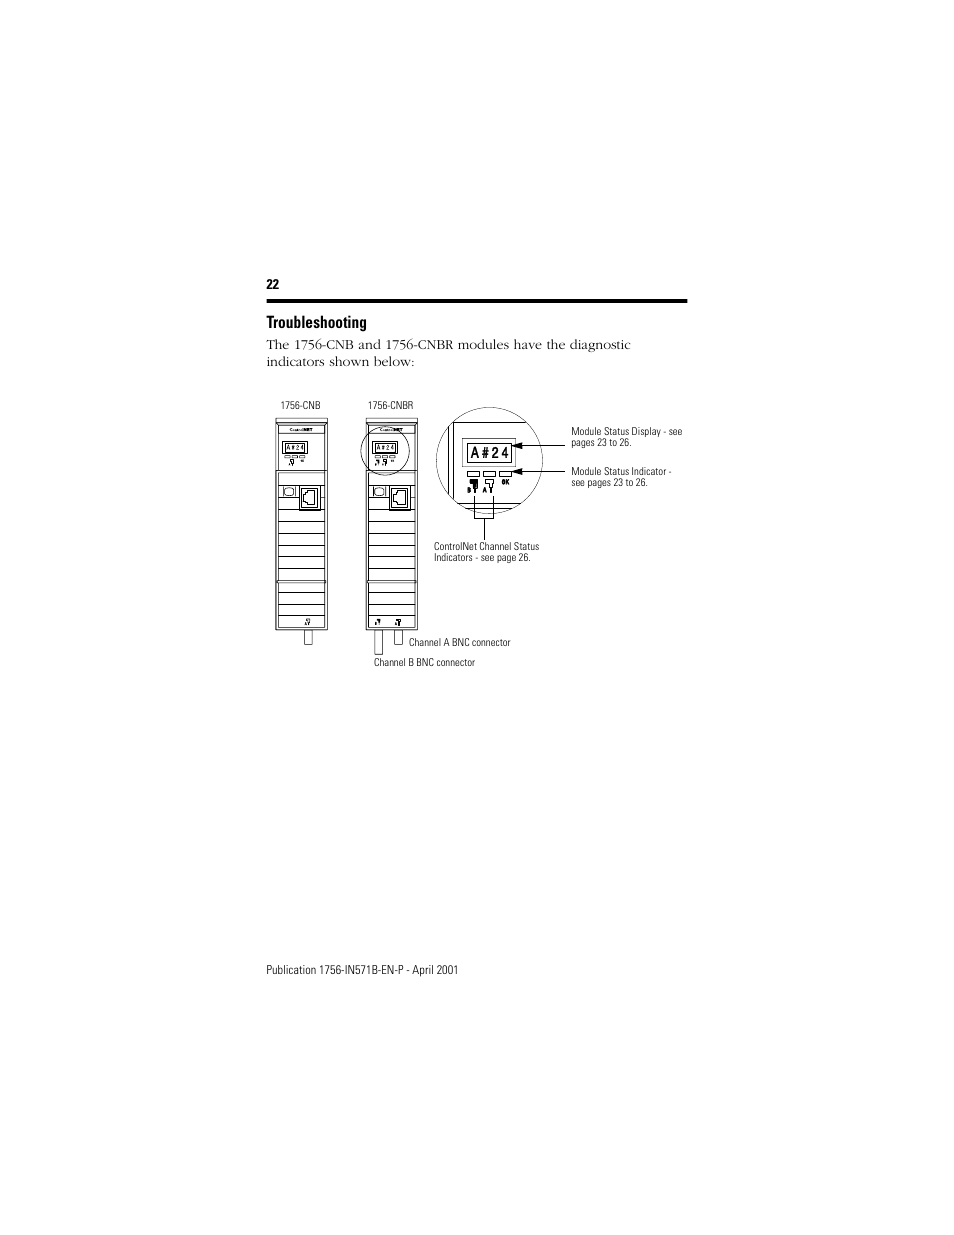 Troubleshooting | Rockwell Automation 1756-CNB ControlLogix